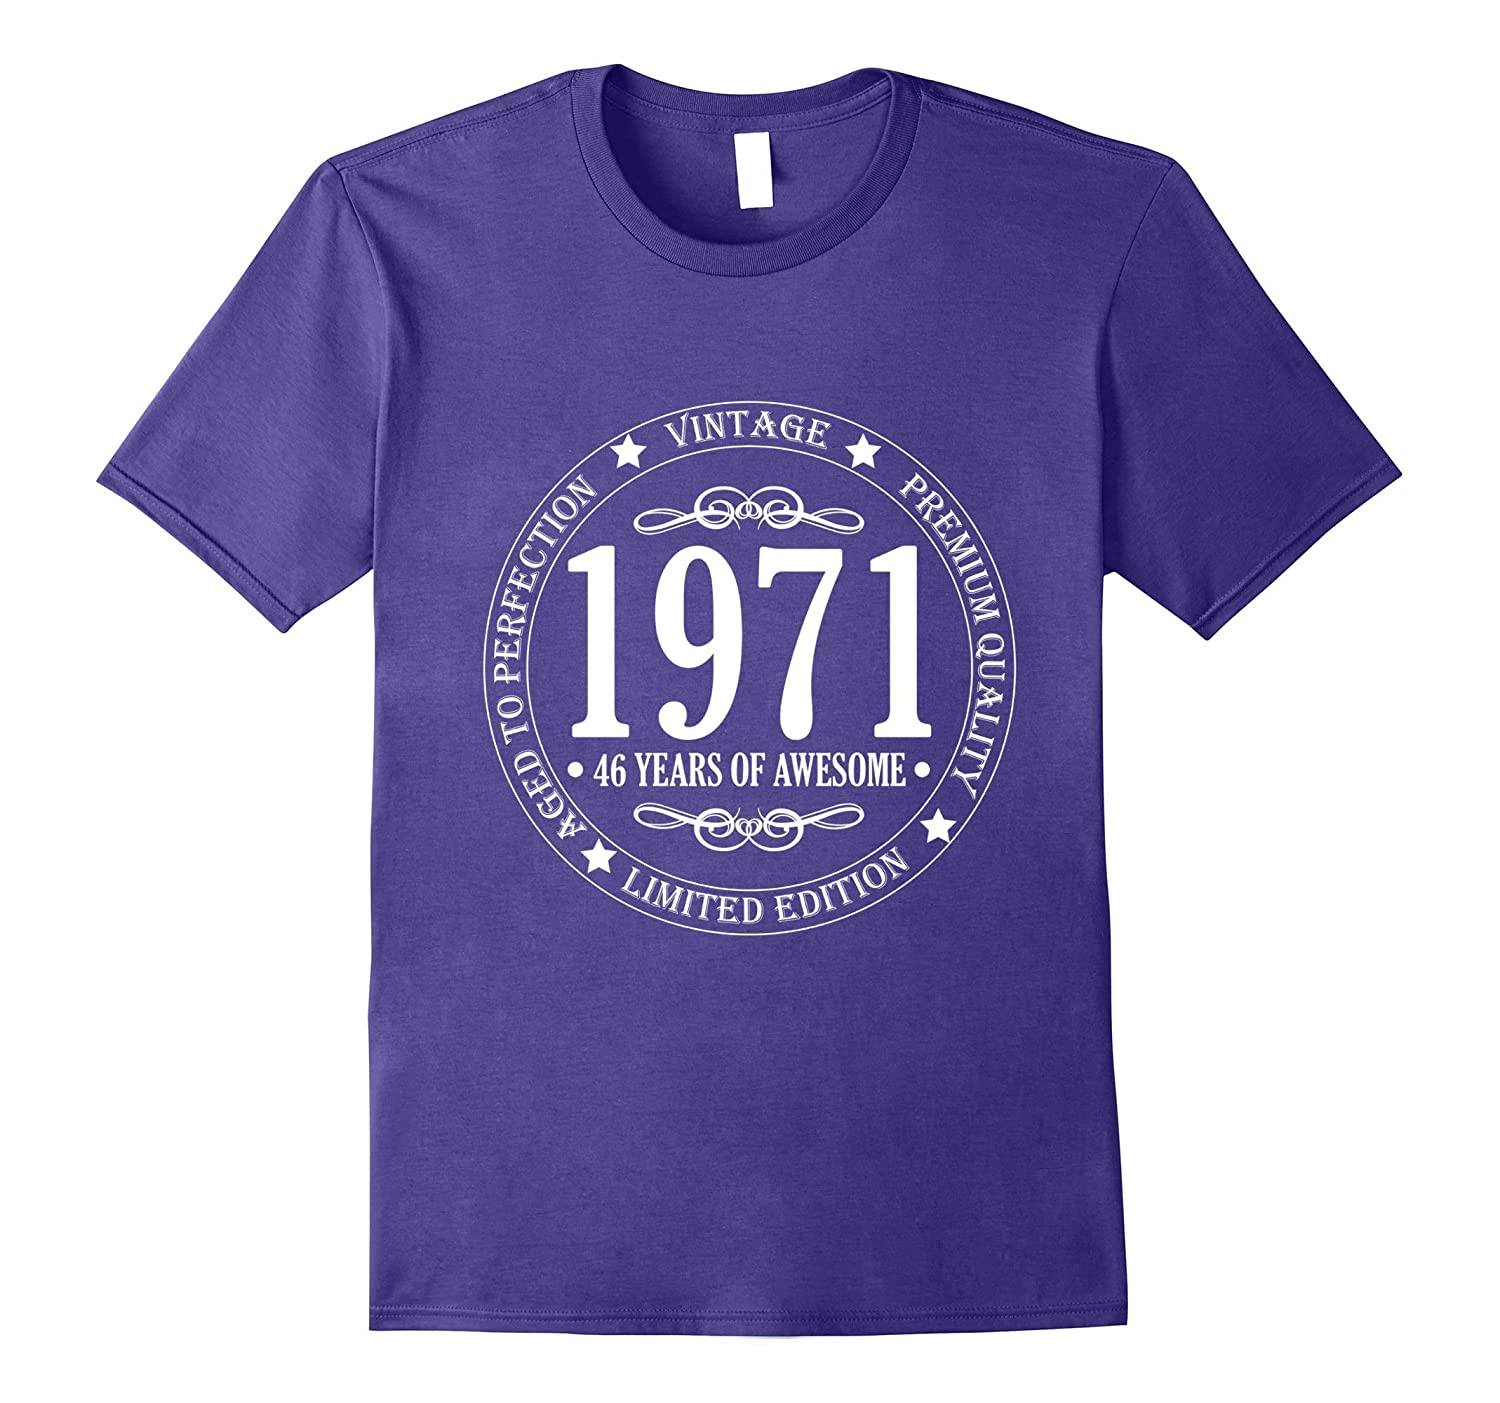 1971 46 Years Of Awesome Vintage T-Shirt